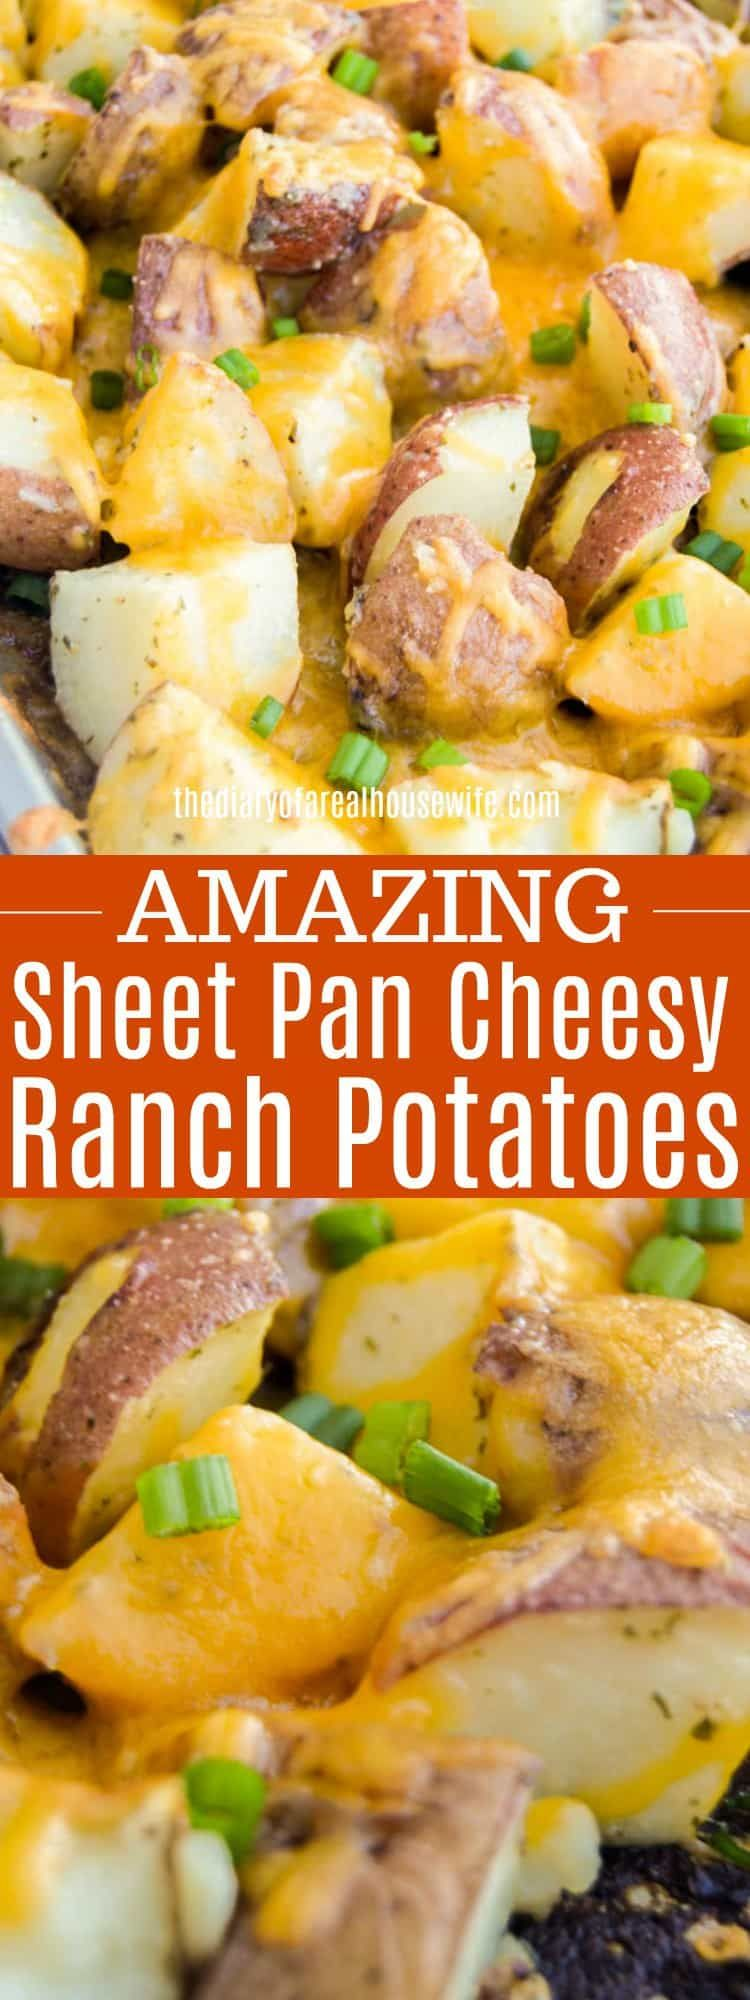 Sheet Pan Cheesy Ranch Potatoes • The Diary of a Real Housewife